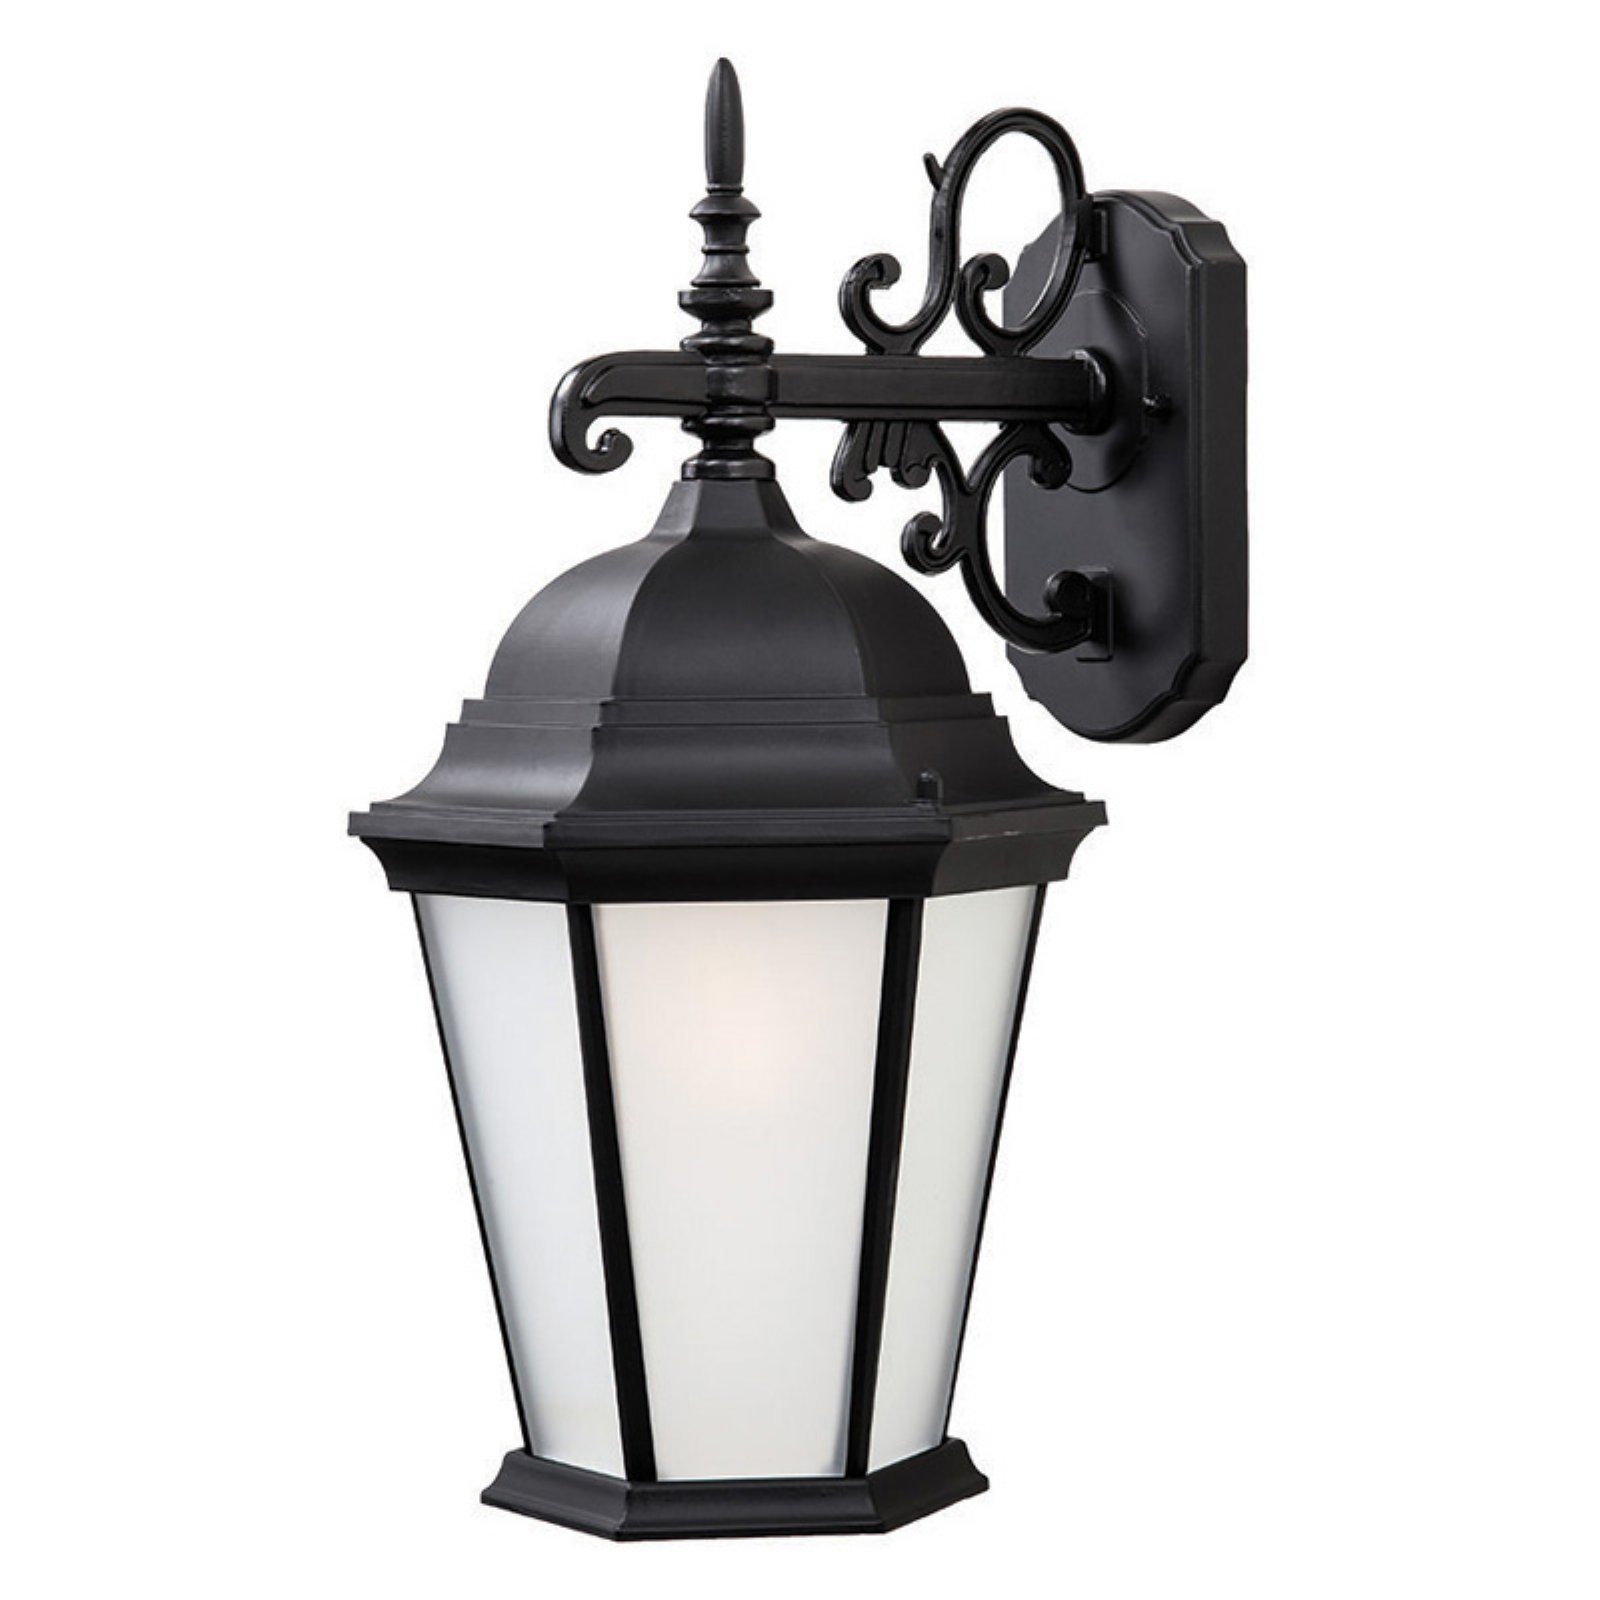 Acclaim Lighting Richmond Outdoor Wall Mount Light Fixture